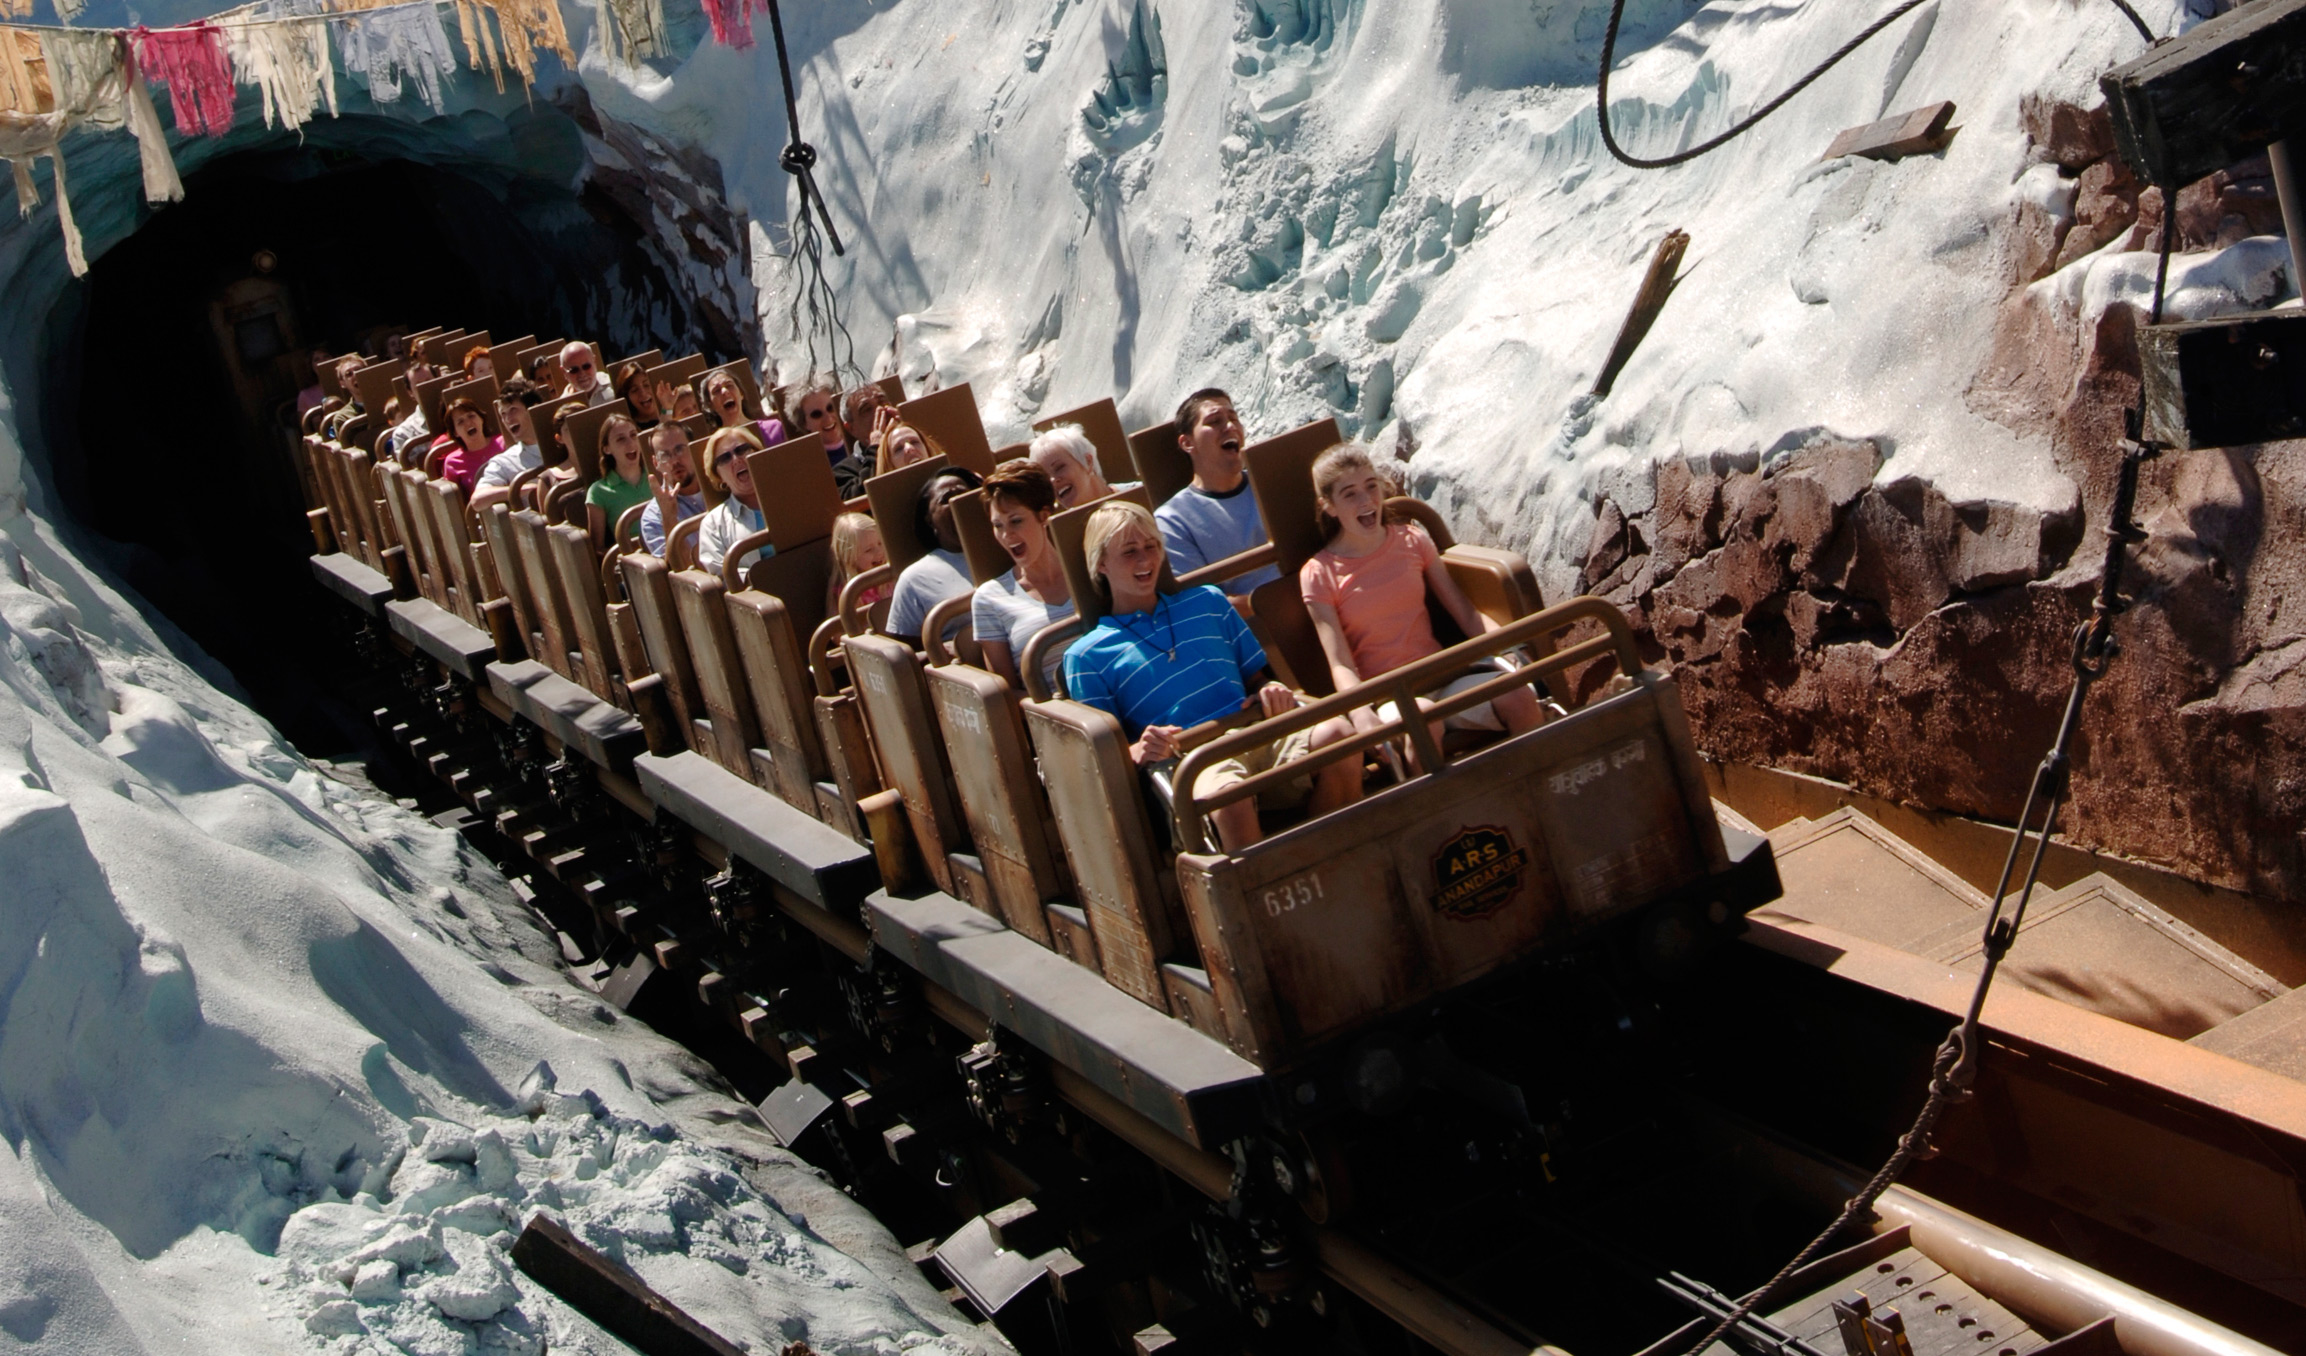 Huéspedes descienden a toda velocidad por una empinada colina en Expedition Everest – Legend of the Forbidden Mountain